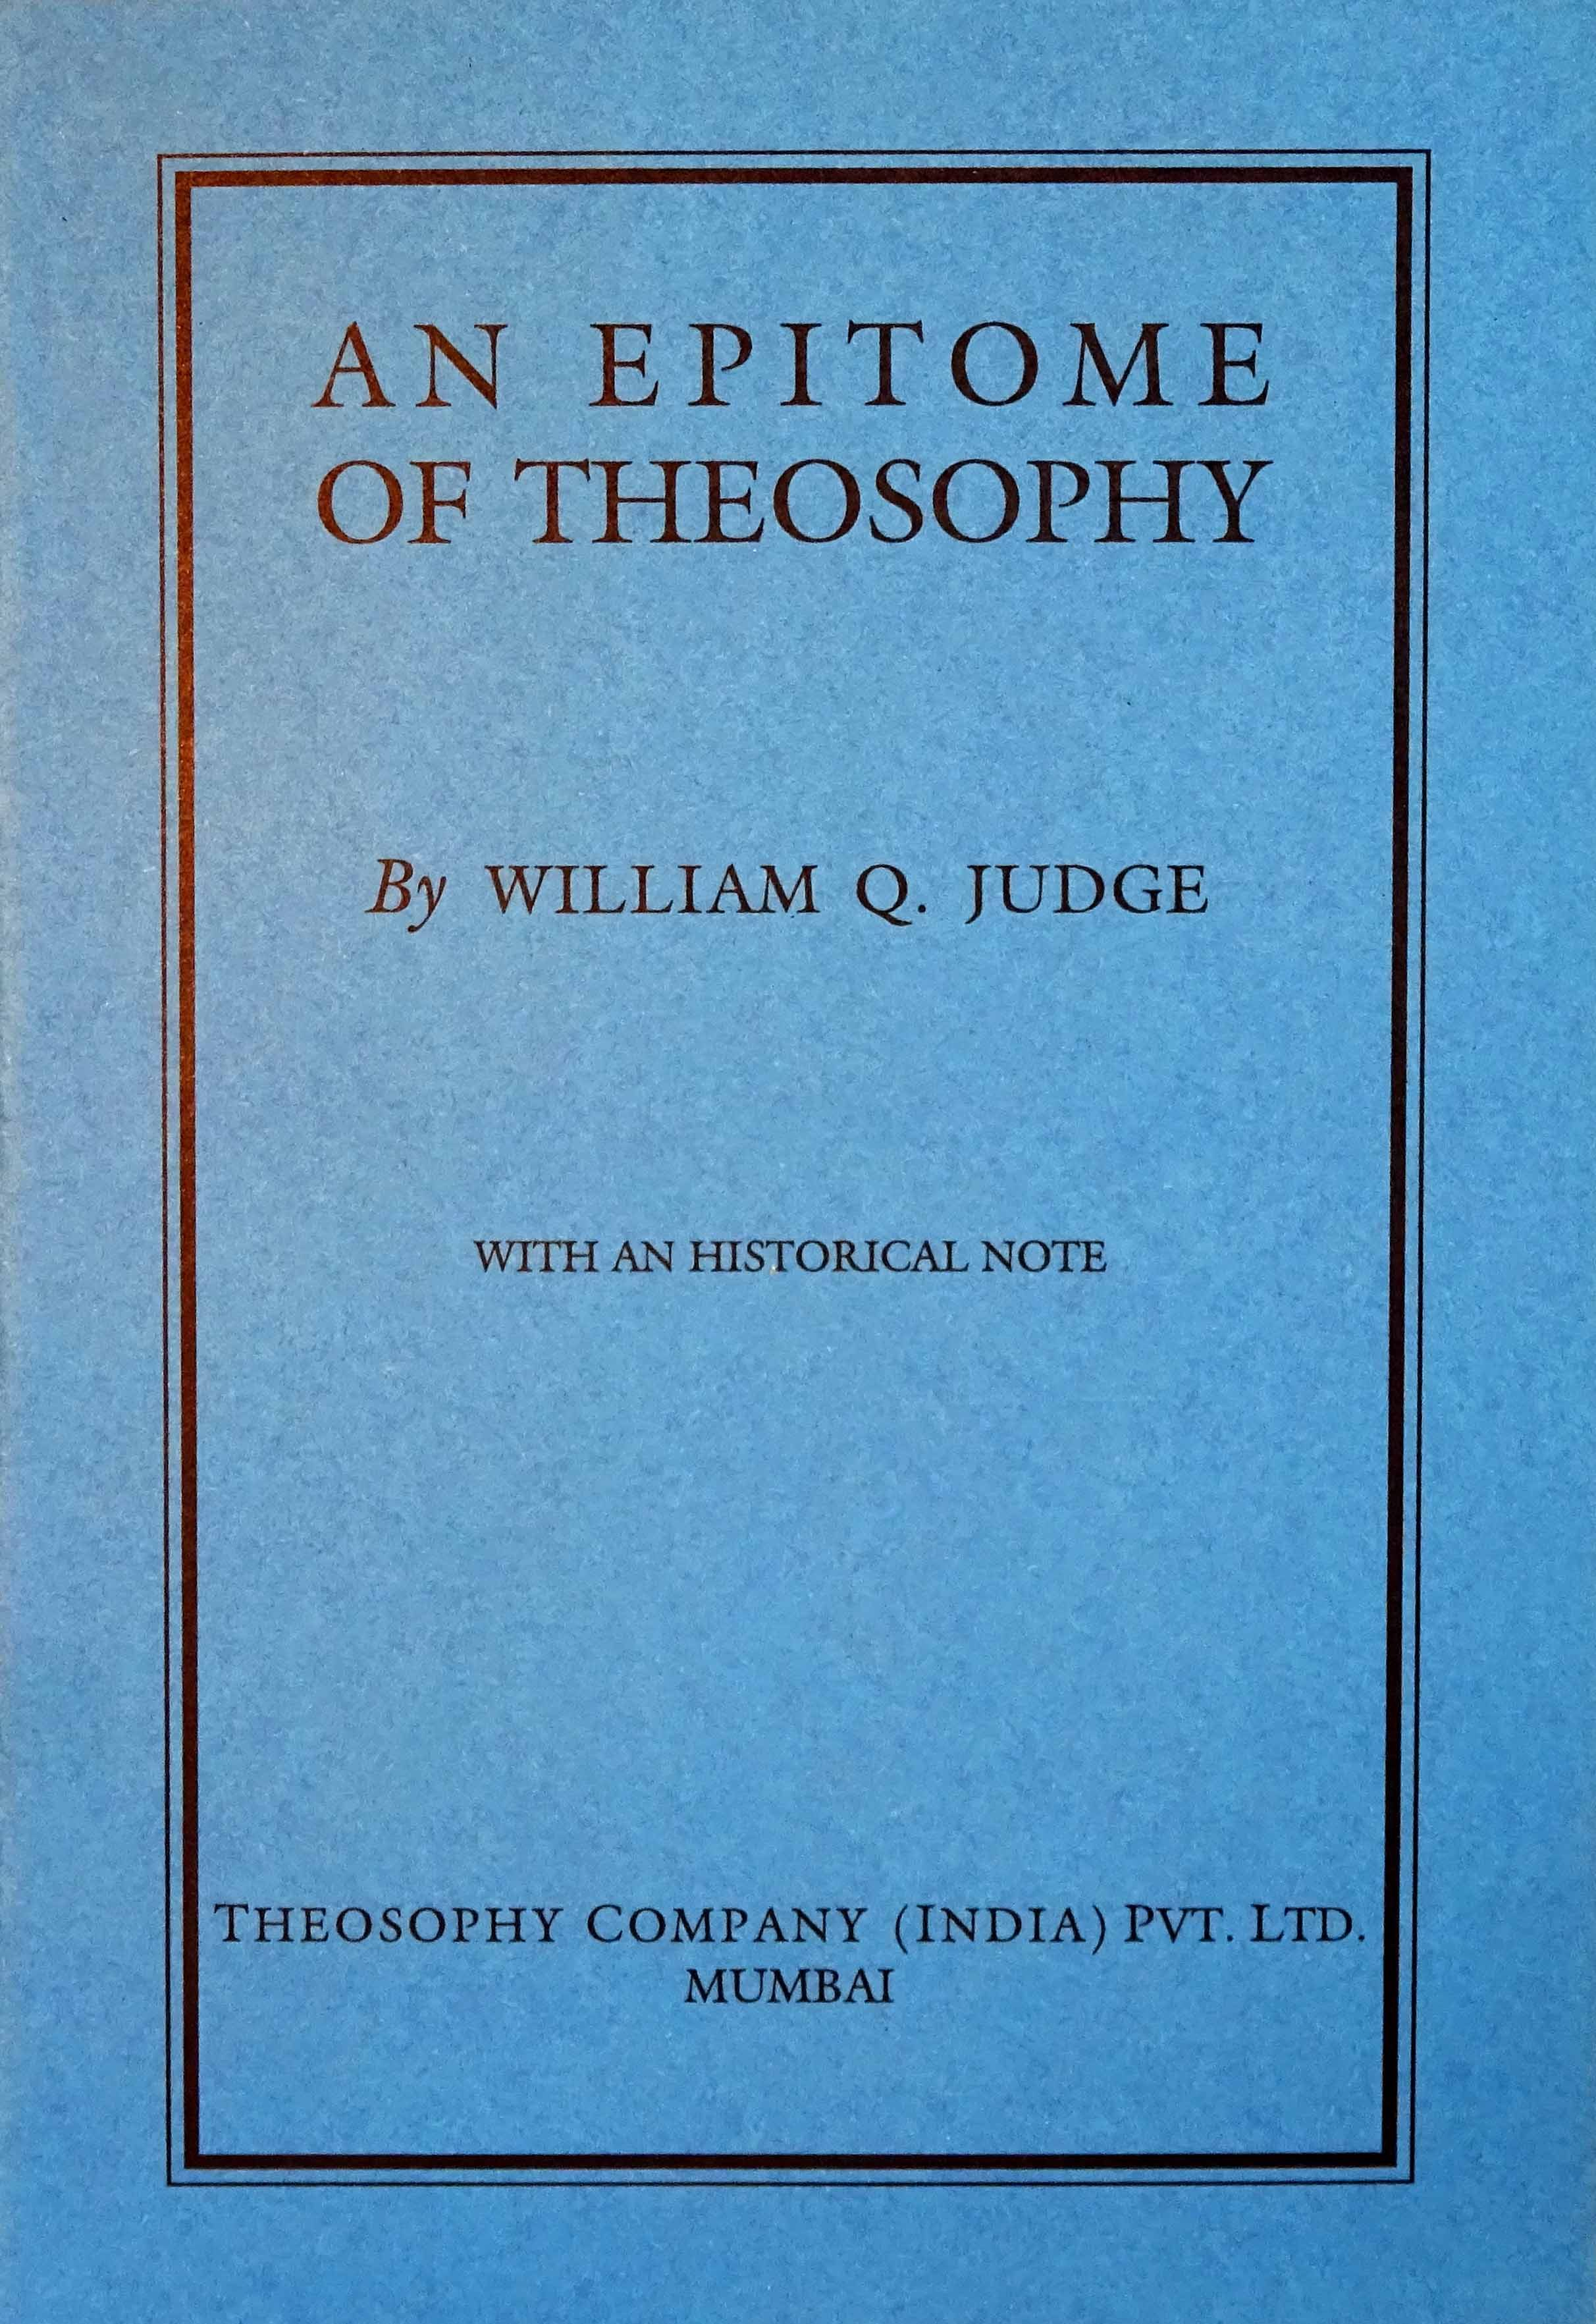 An Epitome of Theosophy by William Q Judge